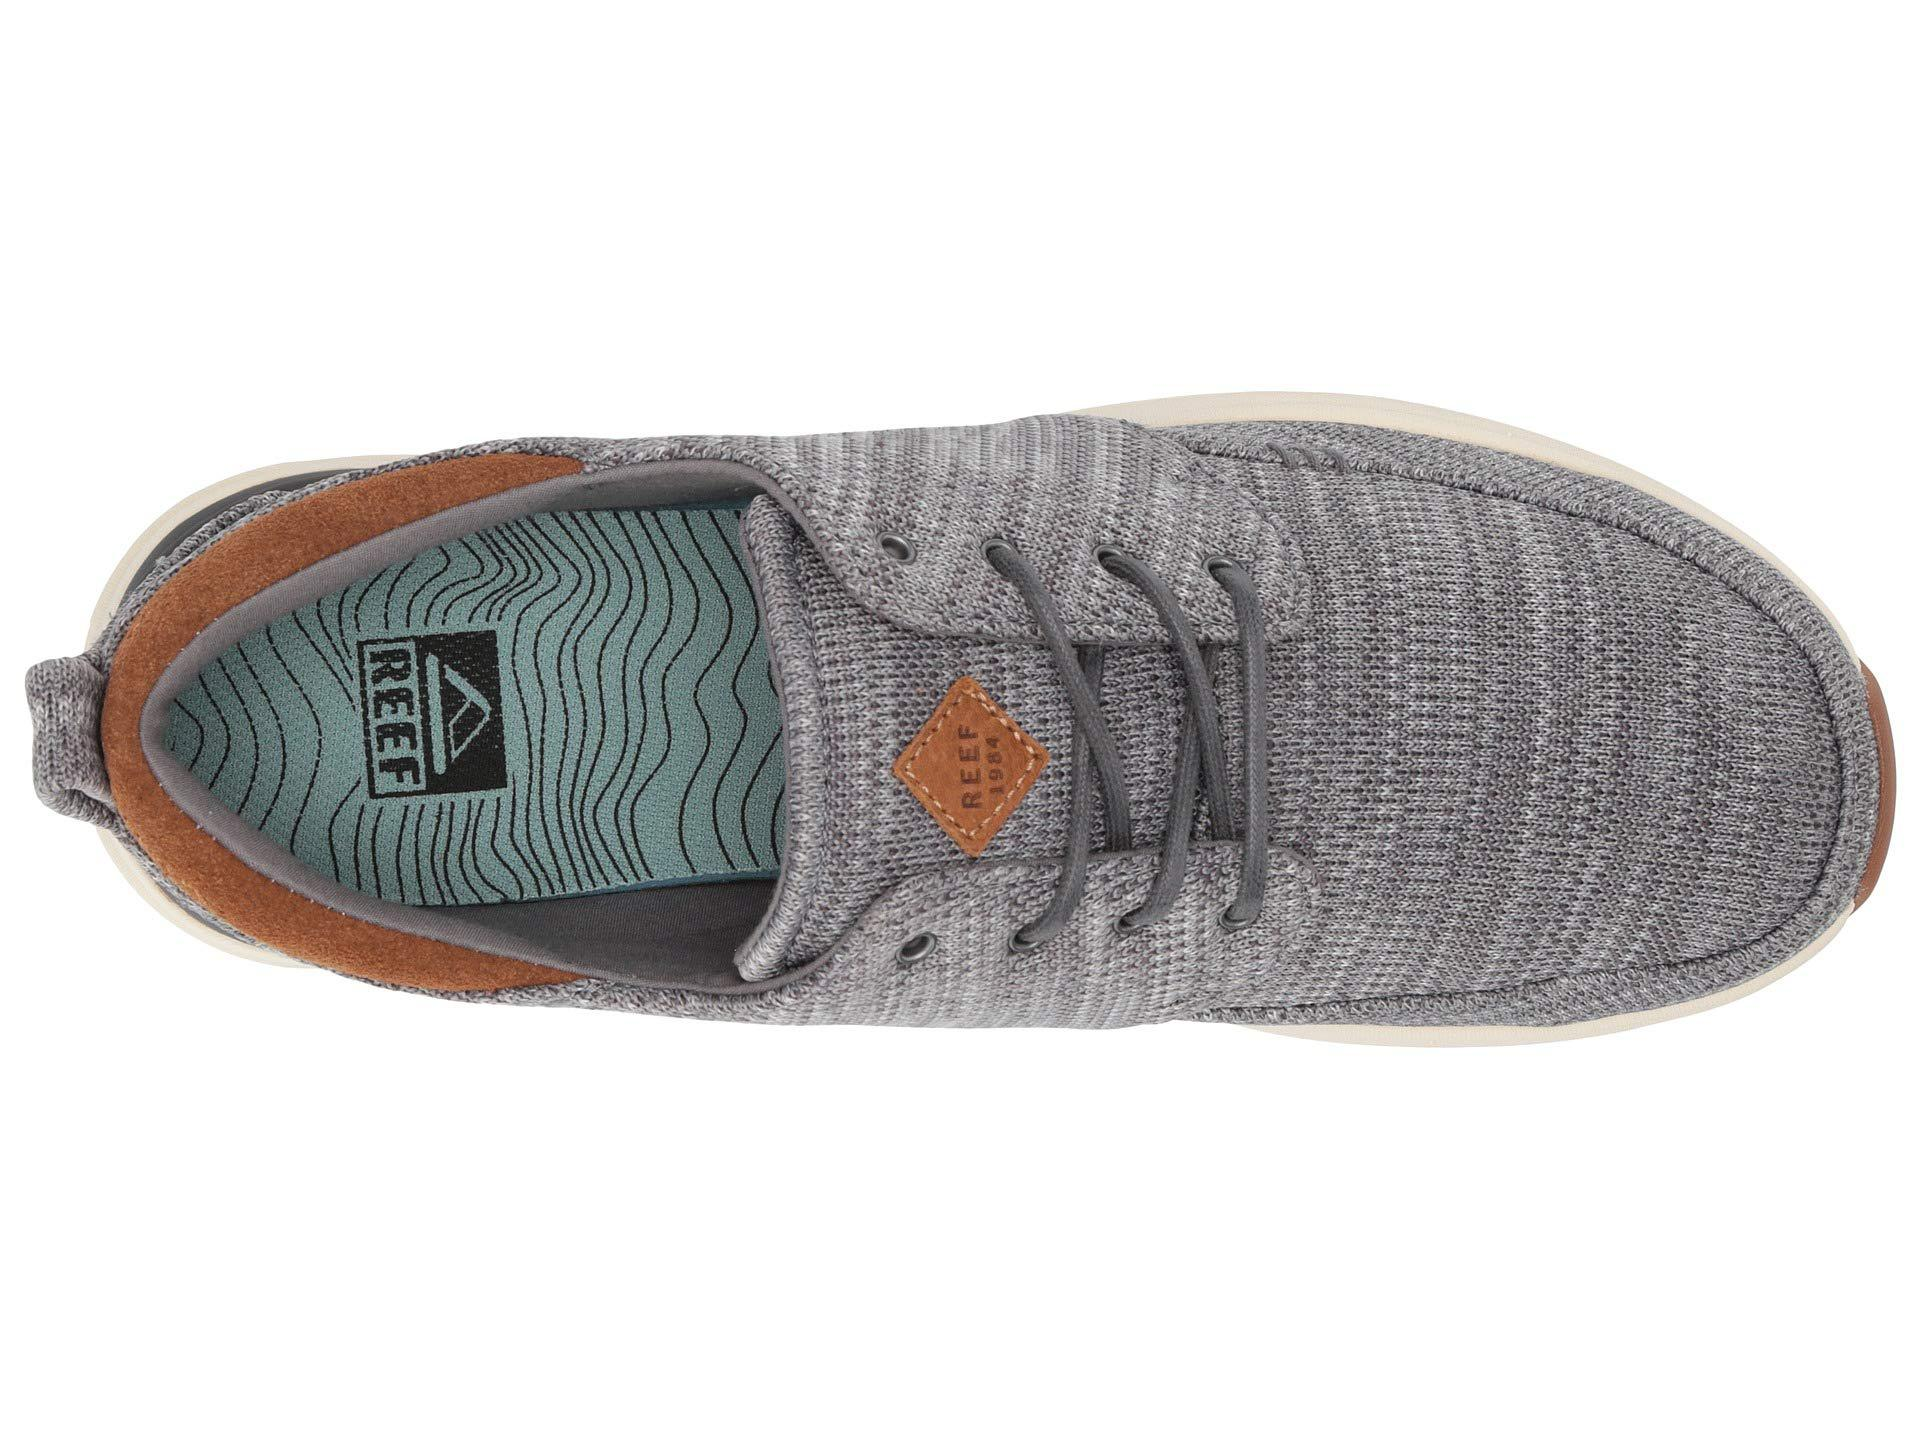 1b71eb593e38 Reef - Gray Rover Low Tx (grey heather) Men s Shoes for Men -. View  fullscreen